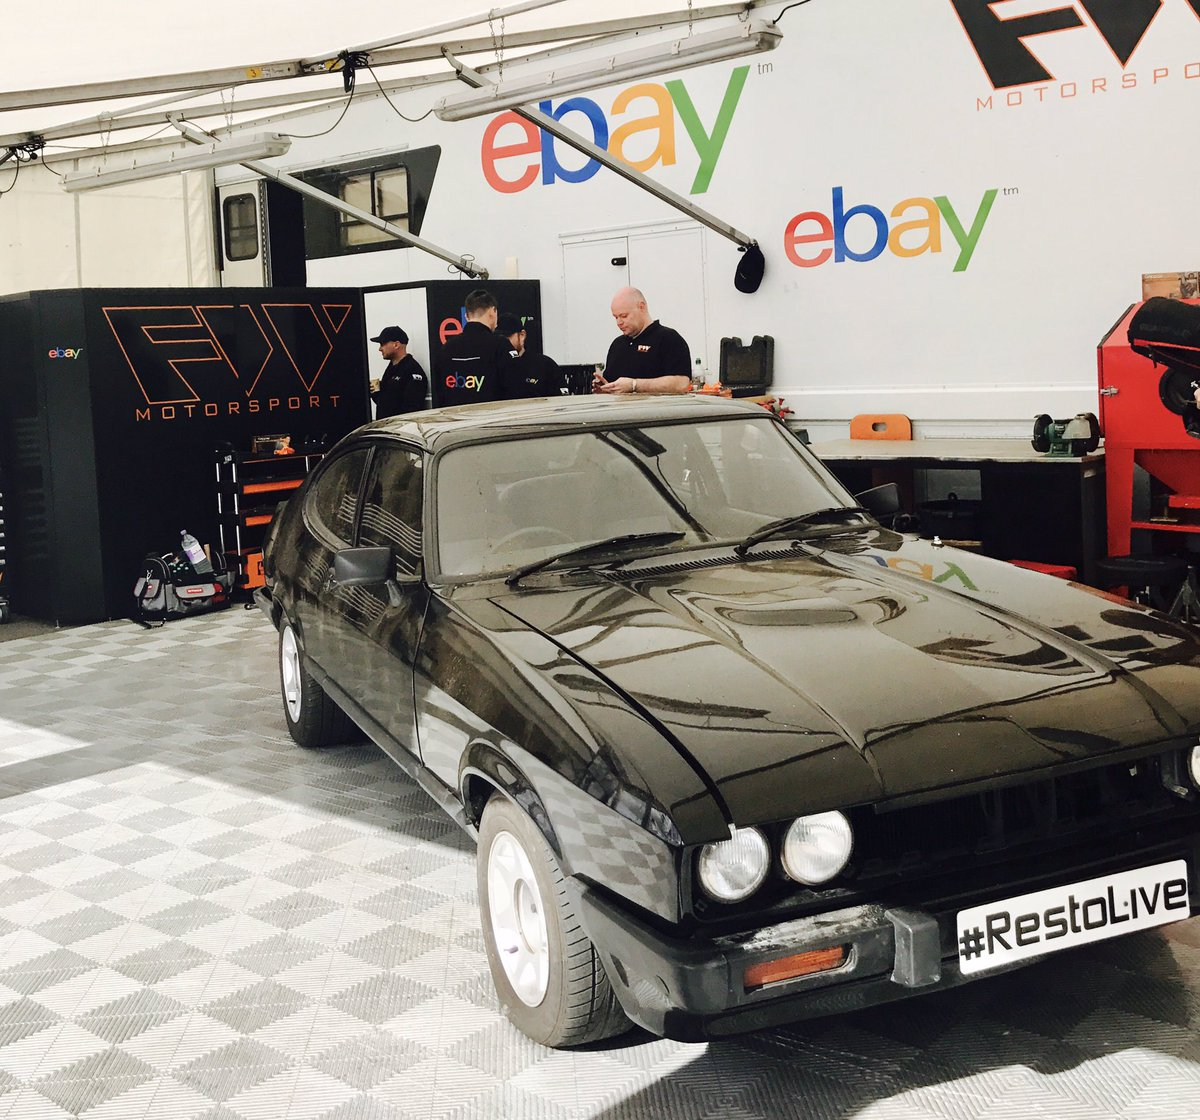 Ebay Co Uk On Twitter Restore This Ford Capri In 3 Days With All Parts And Accessories Bought On Ebay Challenge Accepted Silverstoneclassic Ebayatsilverstone Https T Co Excohltu9r